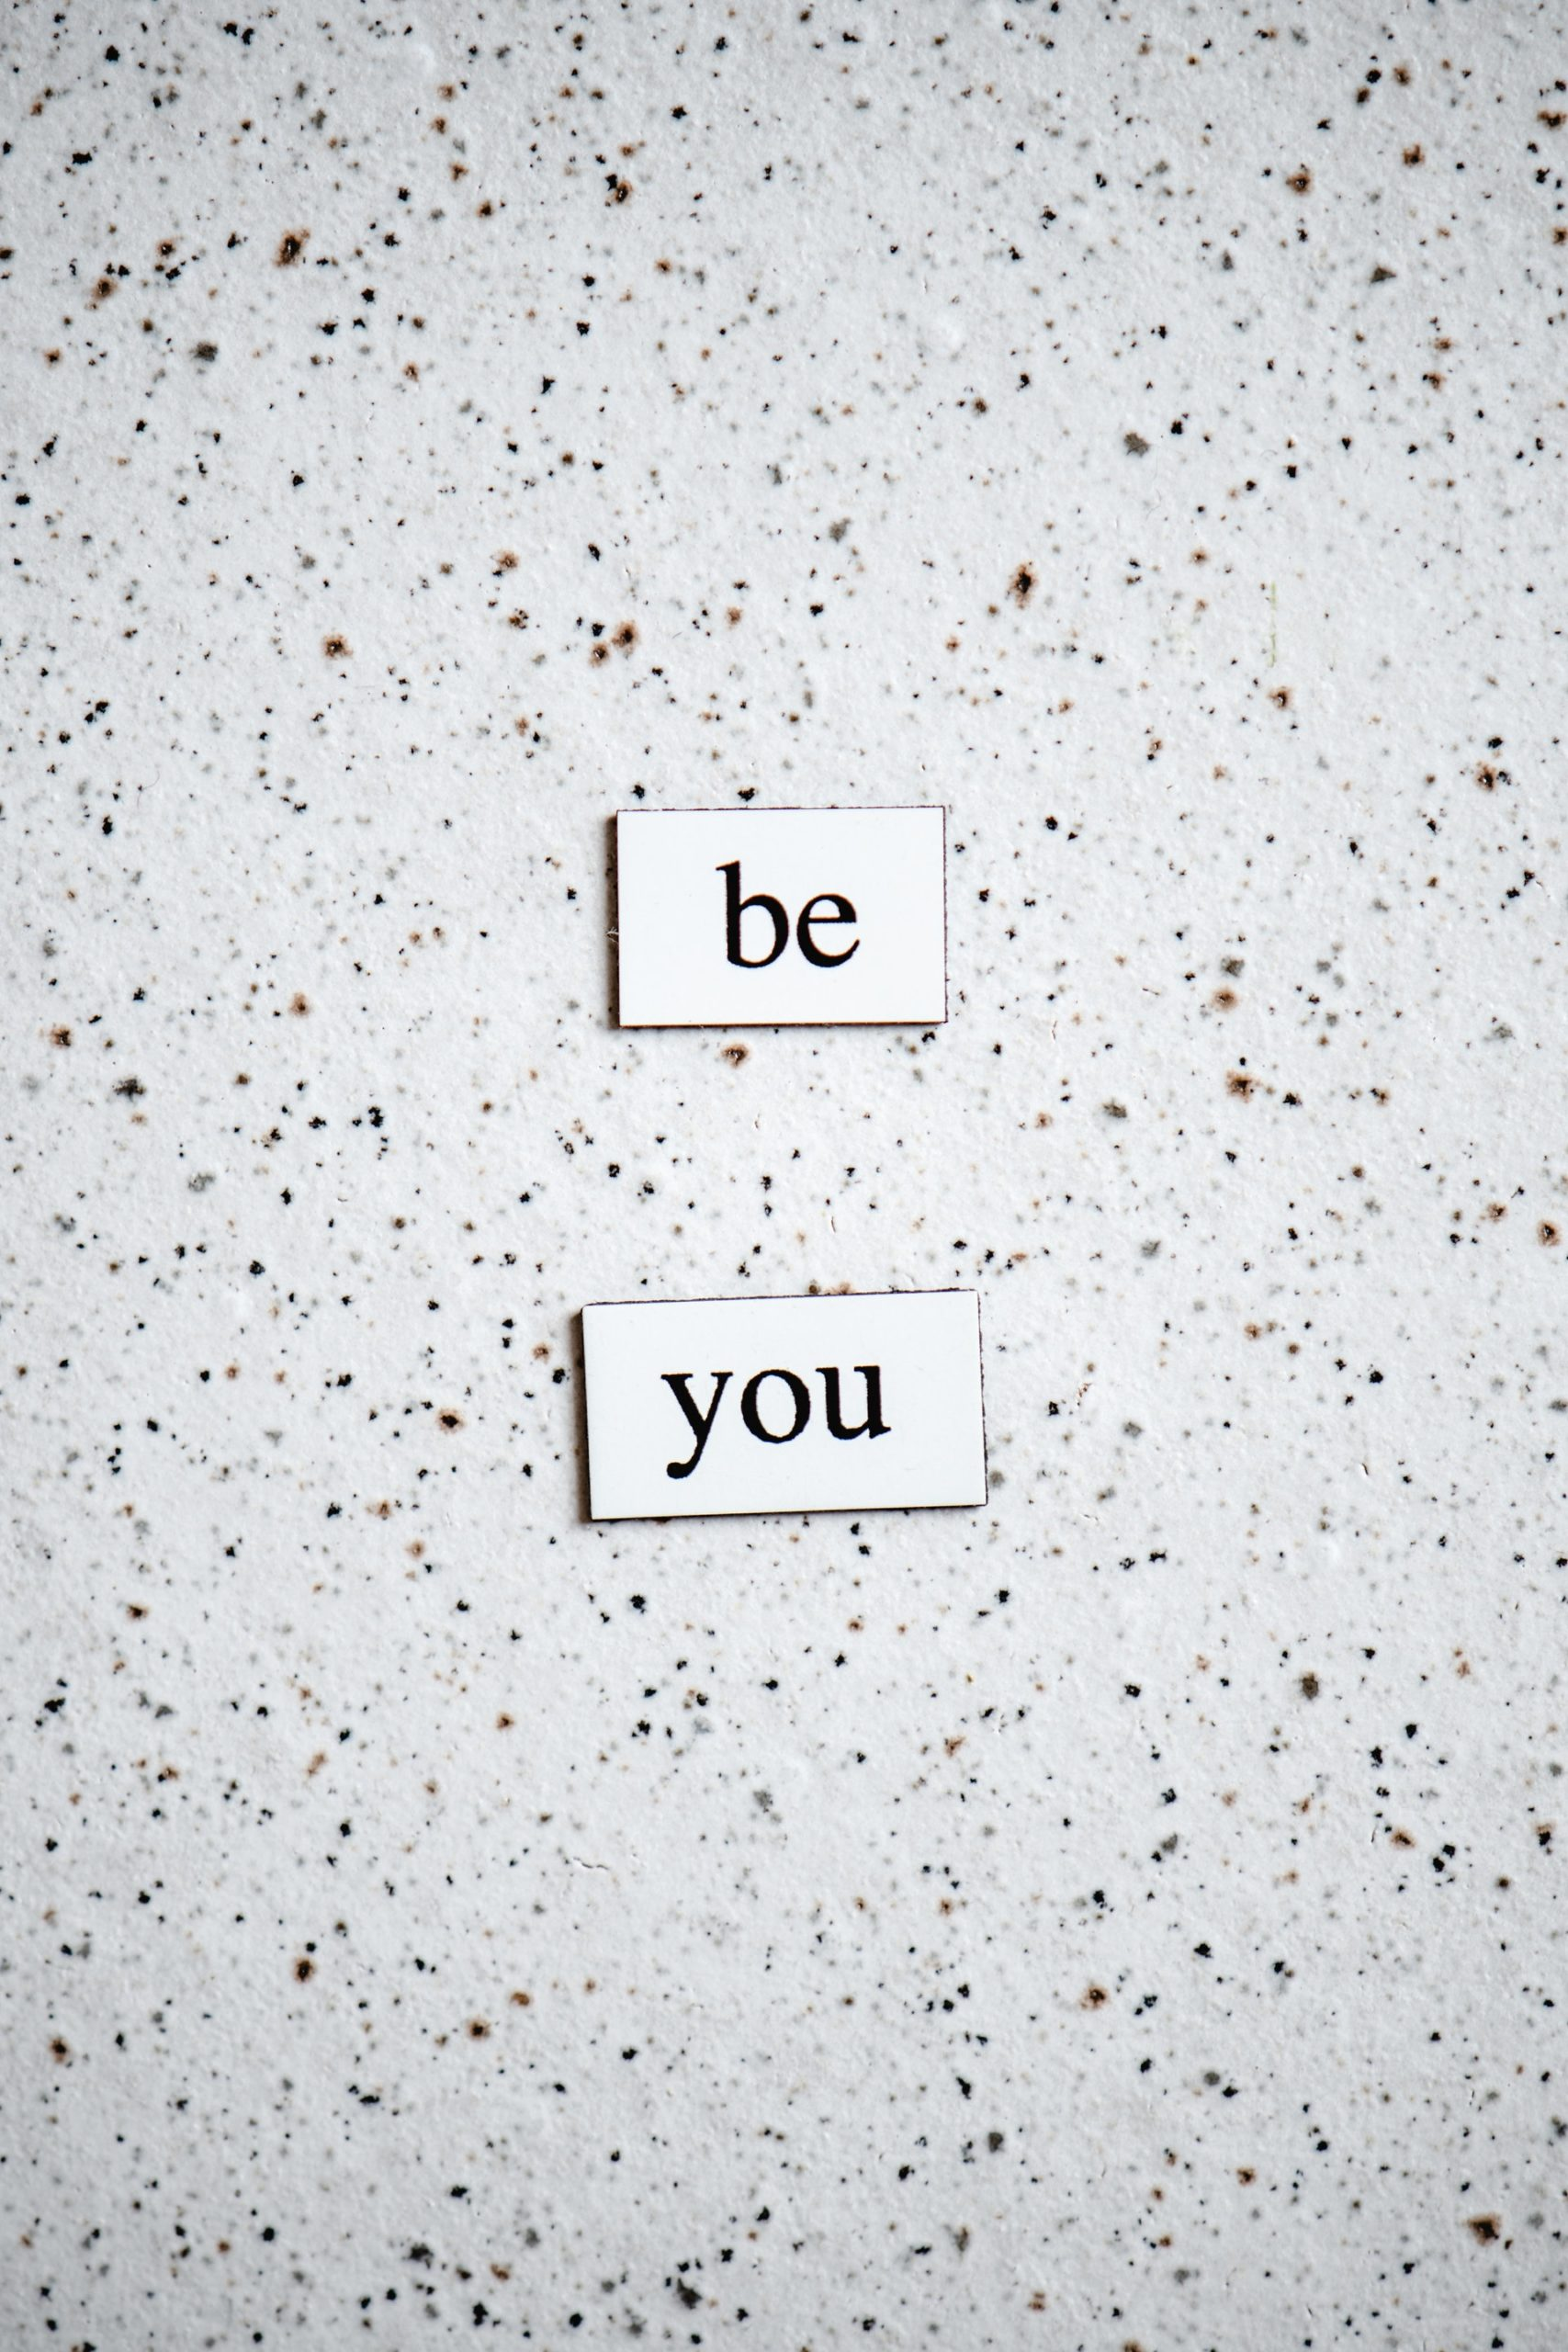 Image with text as be you